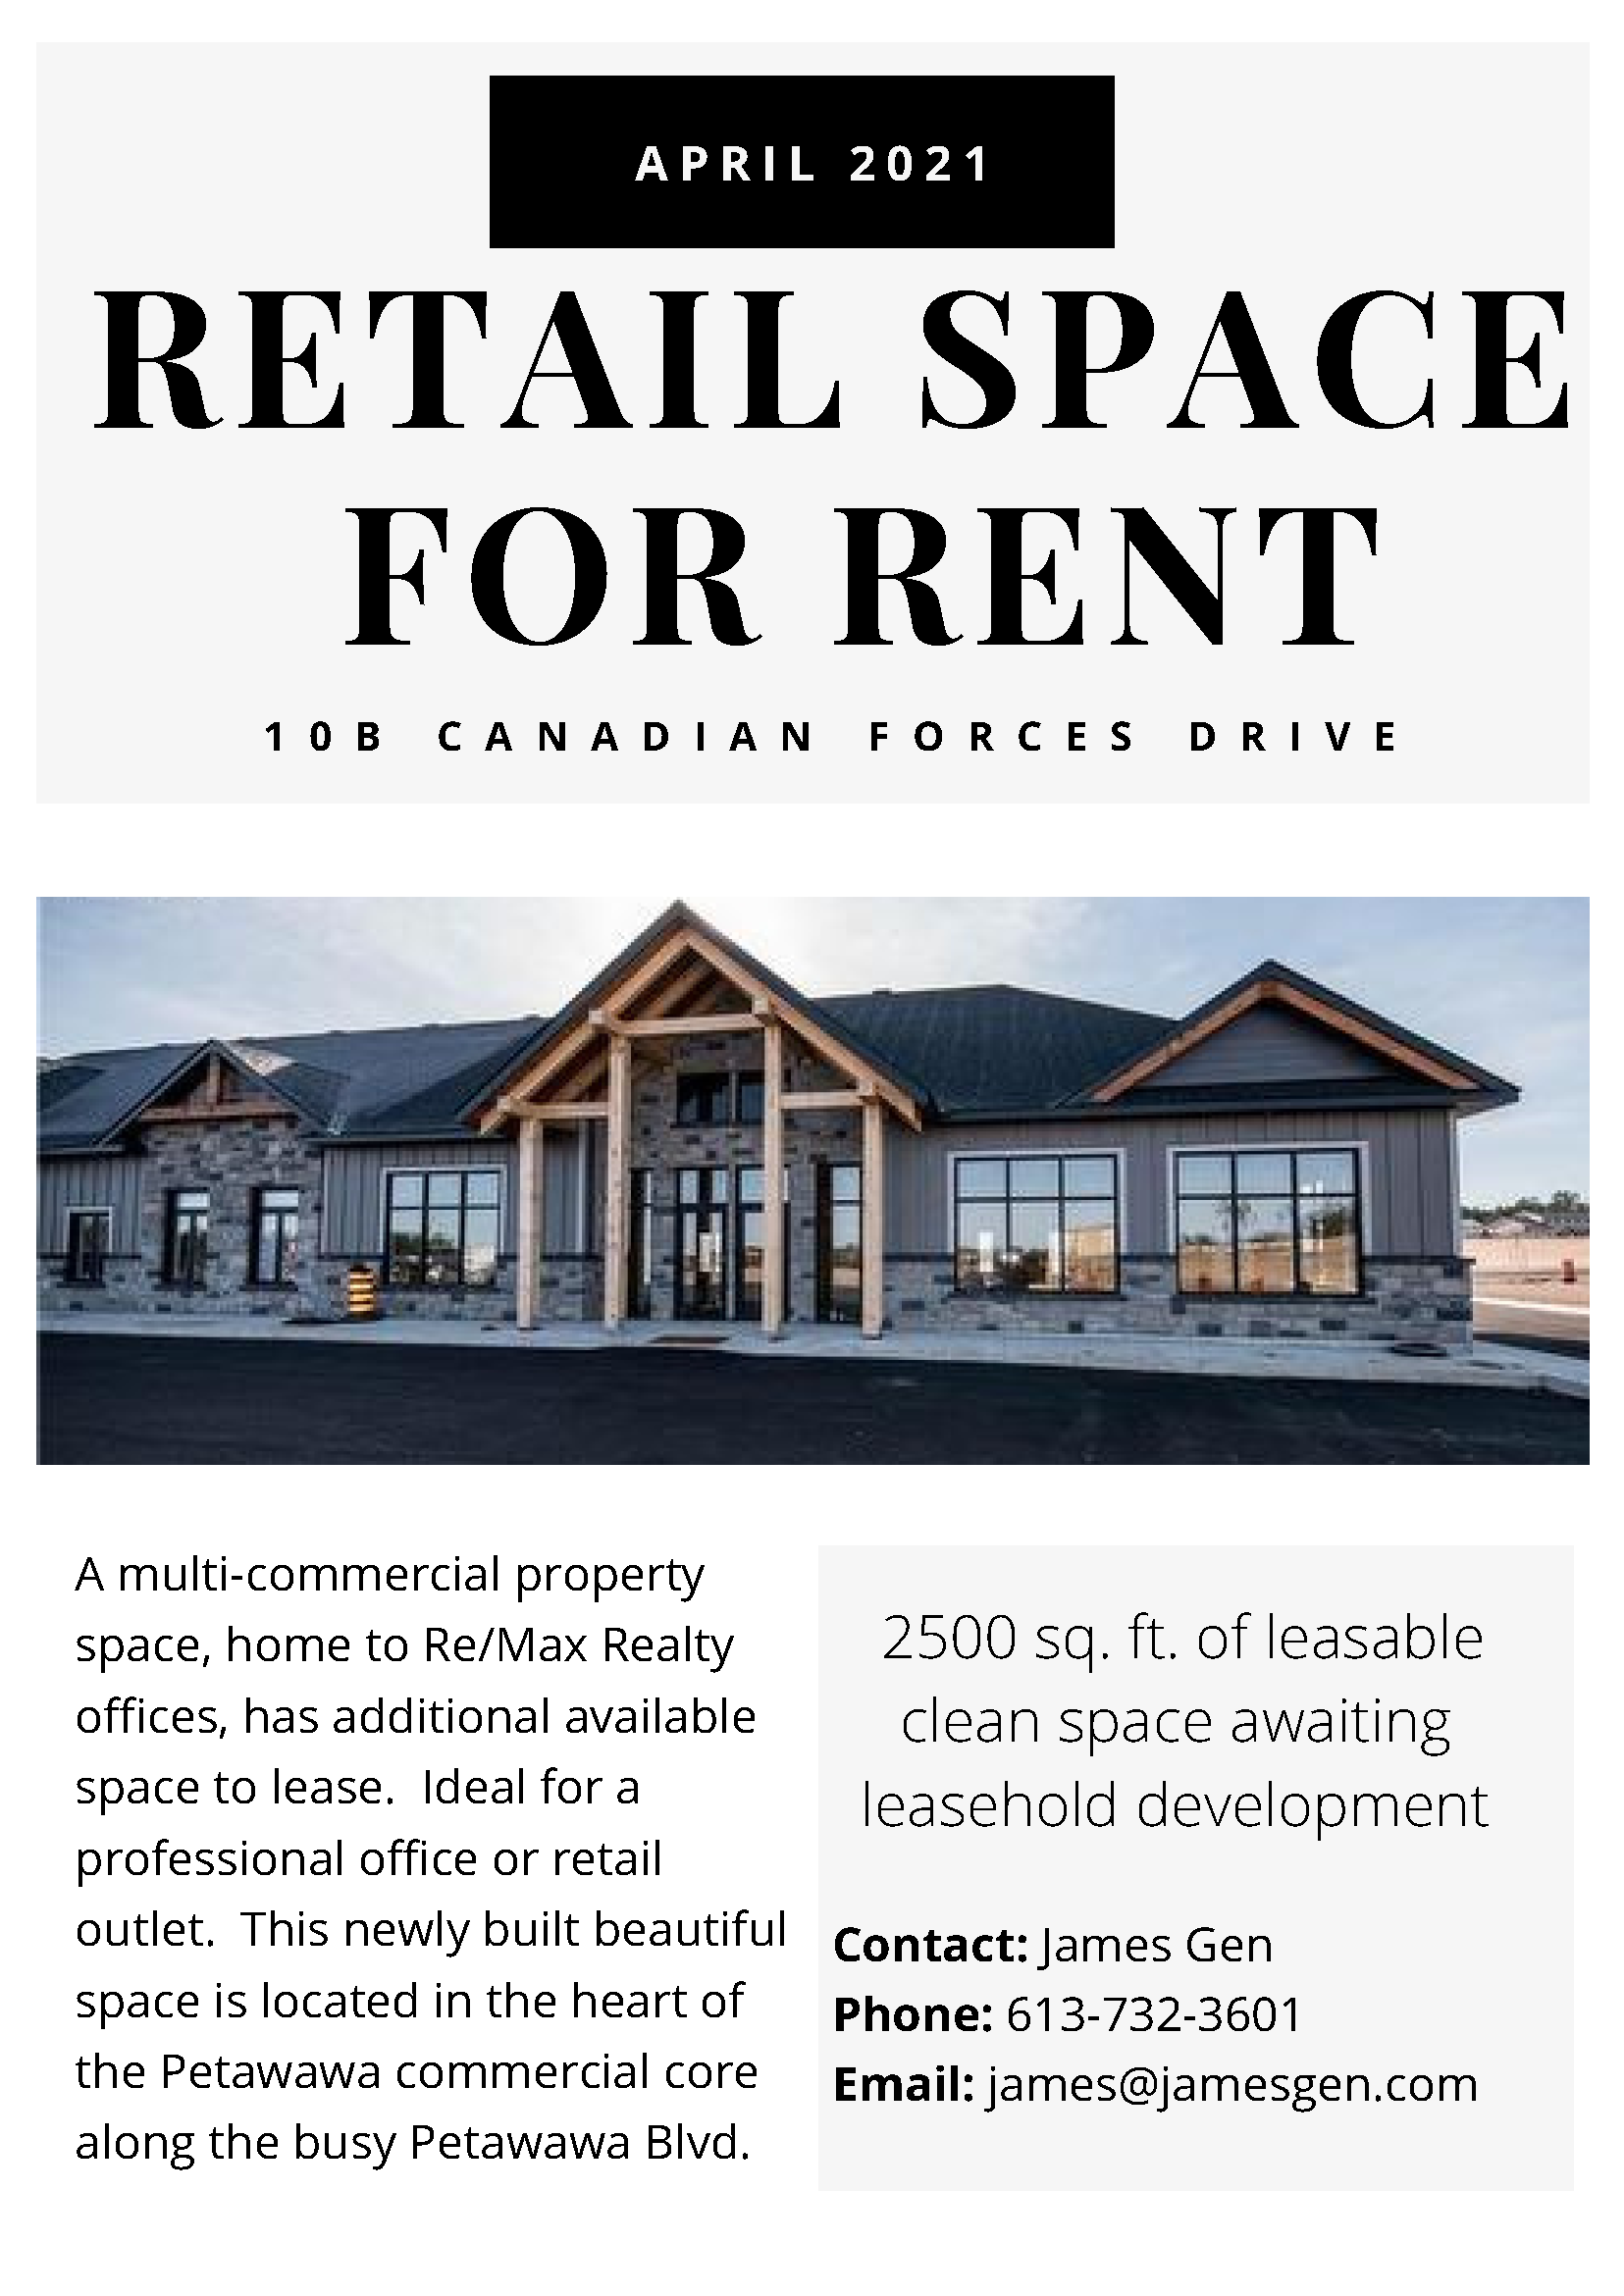 a sales listing for commercial property on Petawawa Blvd.